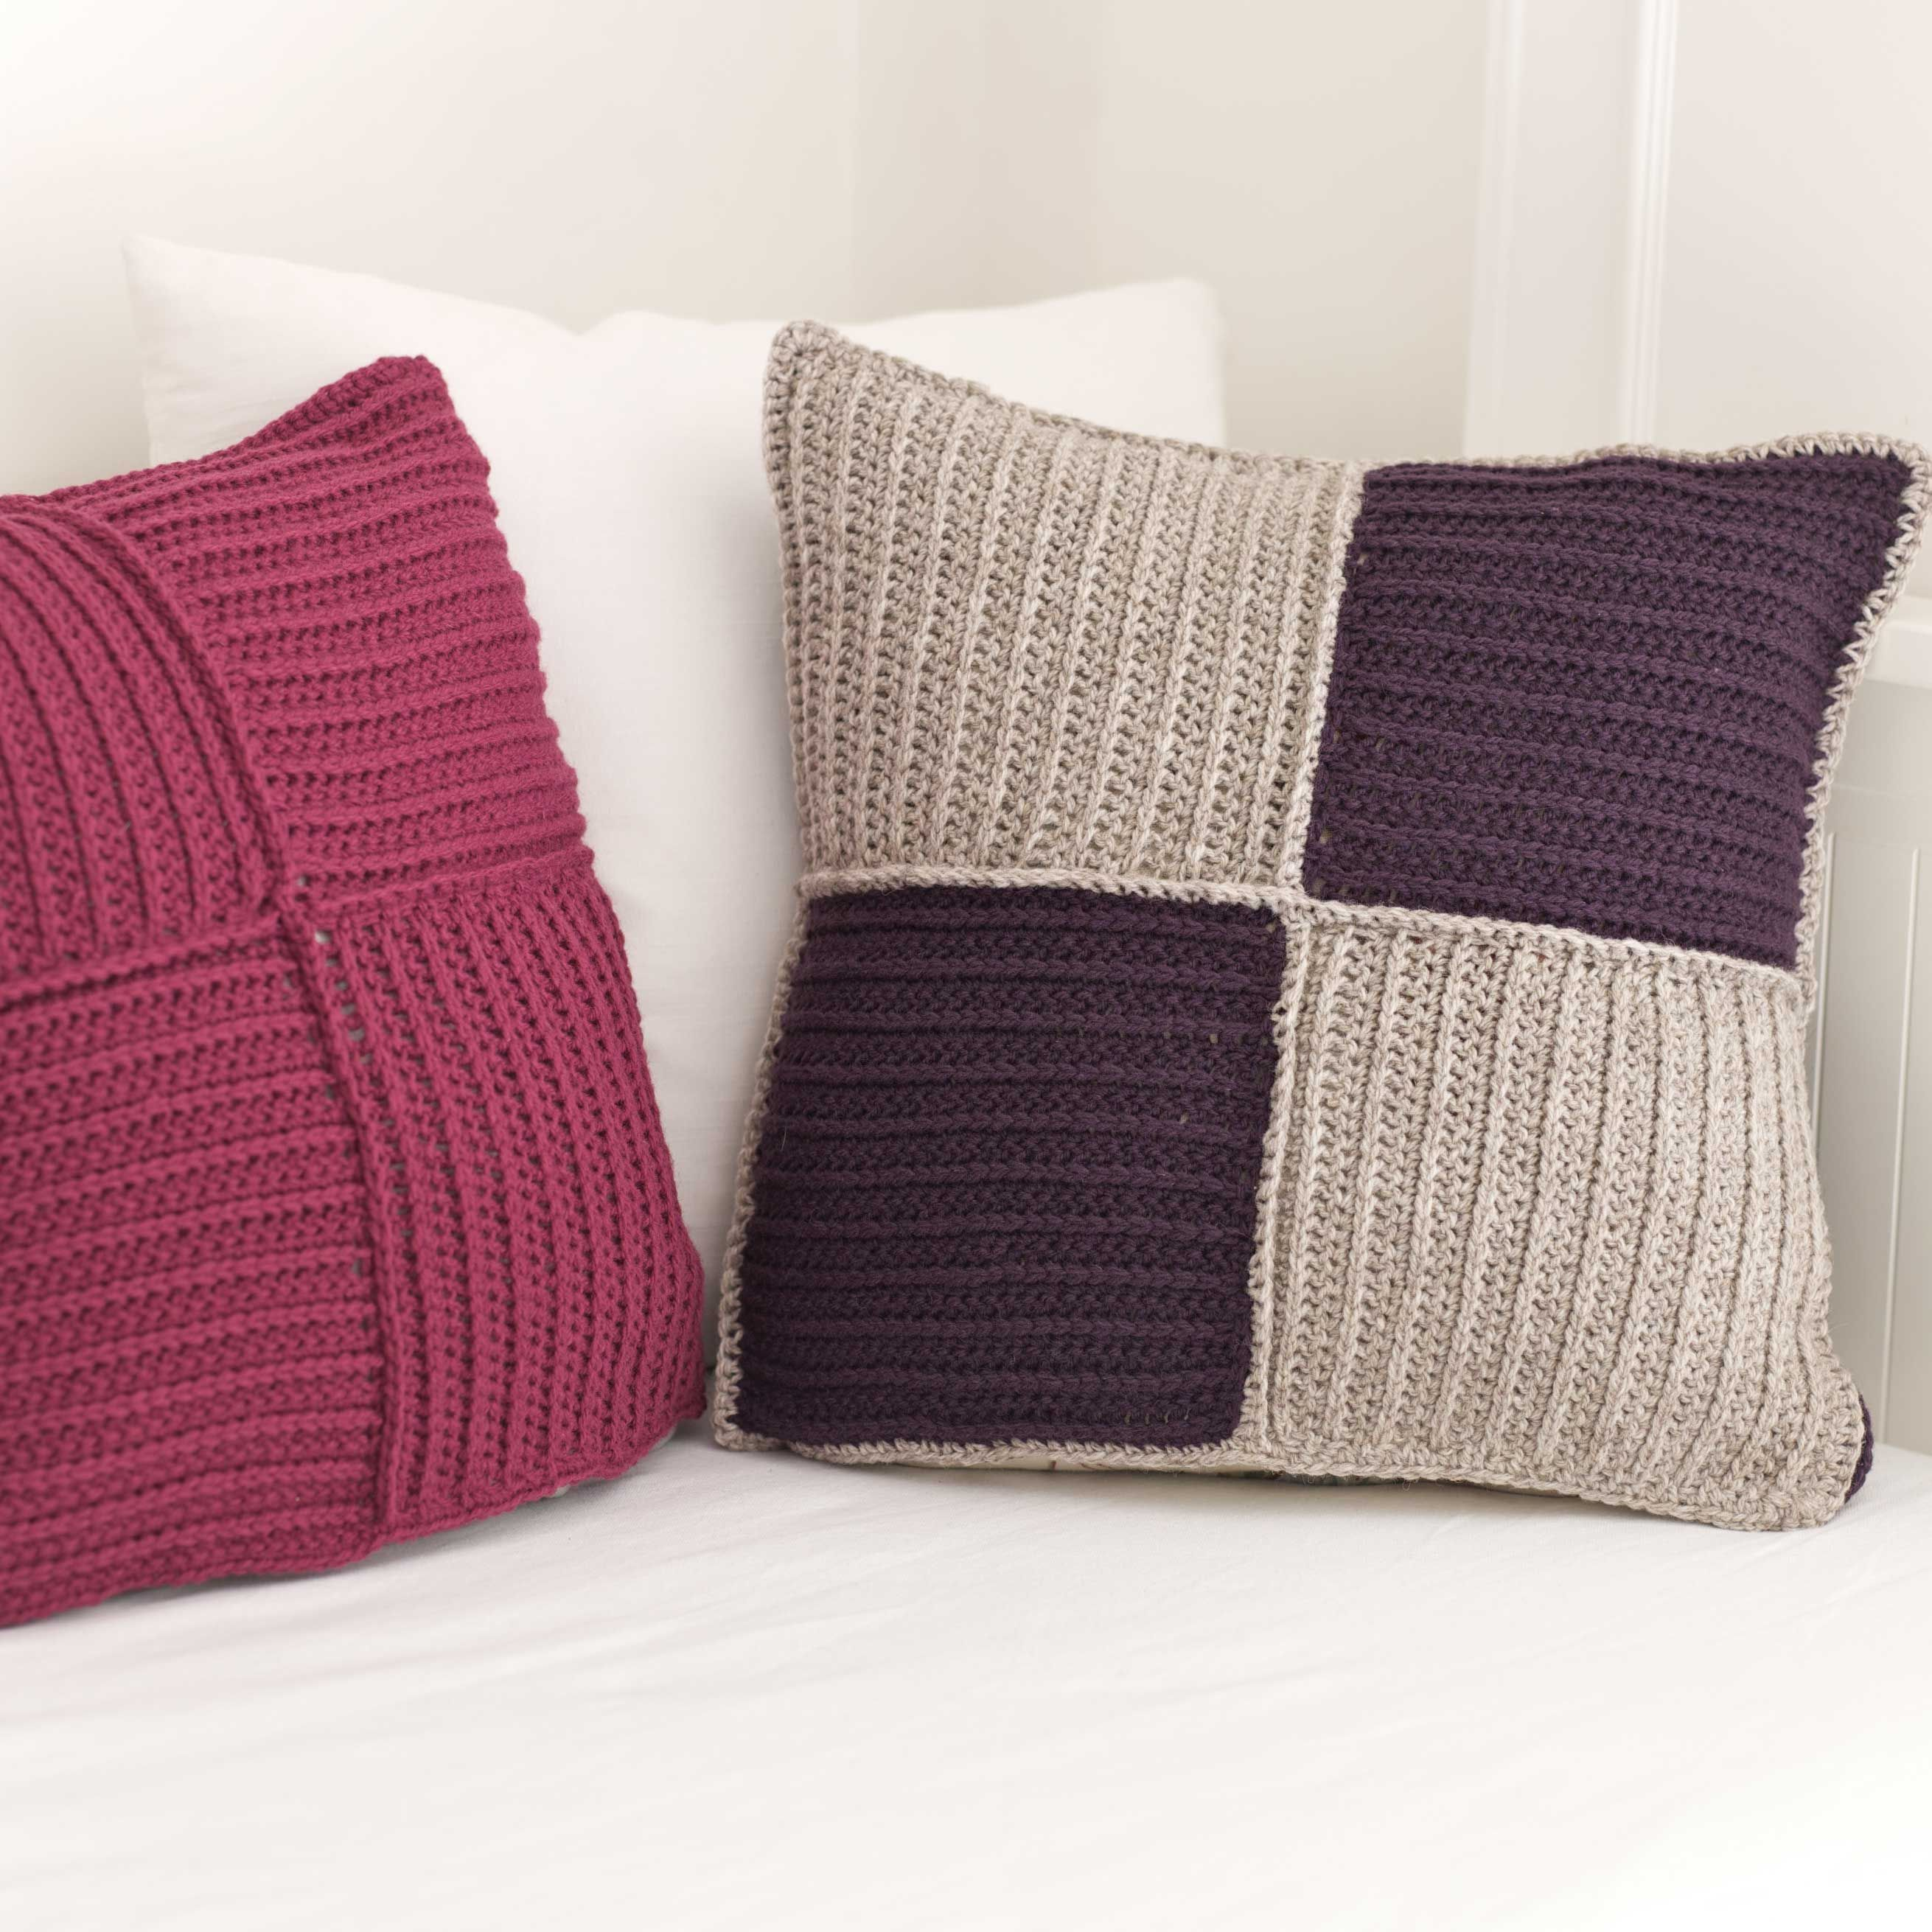 This free ribbed crochet cushion cover pattern will allow you to this free ribbed crochet cushion cover pattern will allow you to make beautiful cushions that look bankloansurffo Choice Image